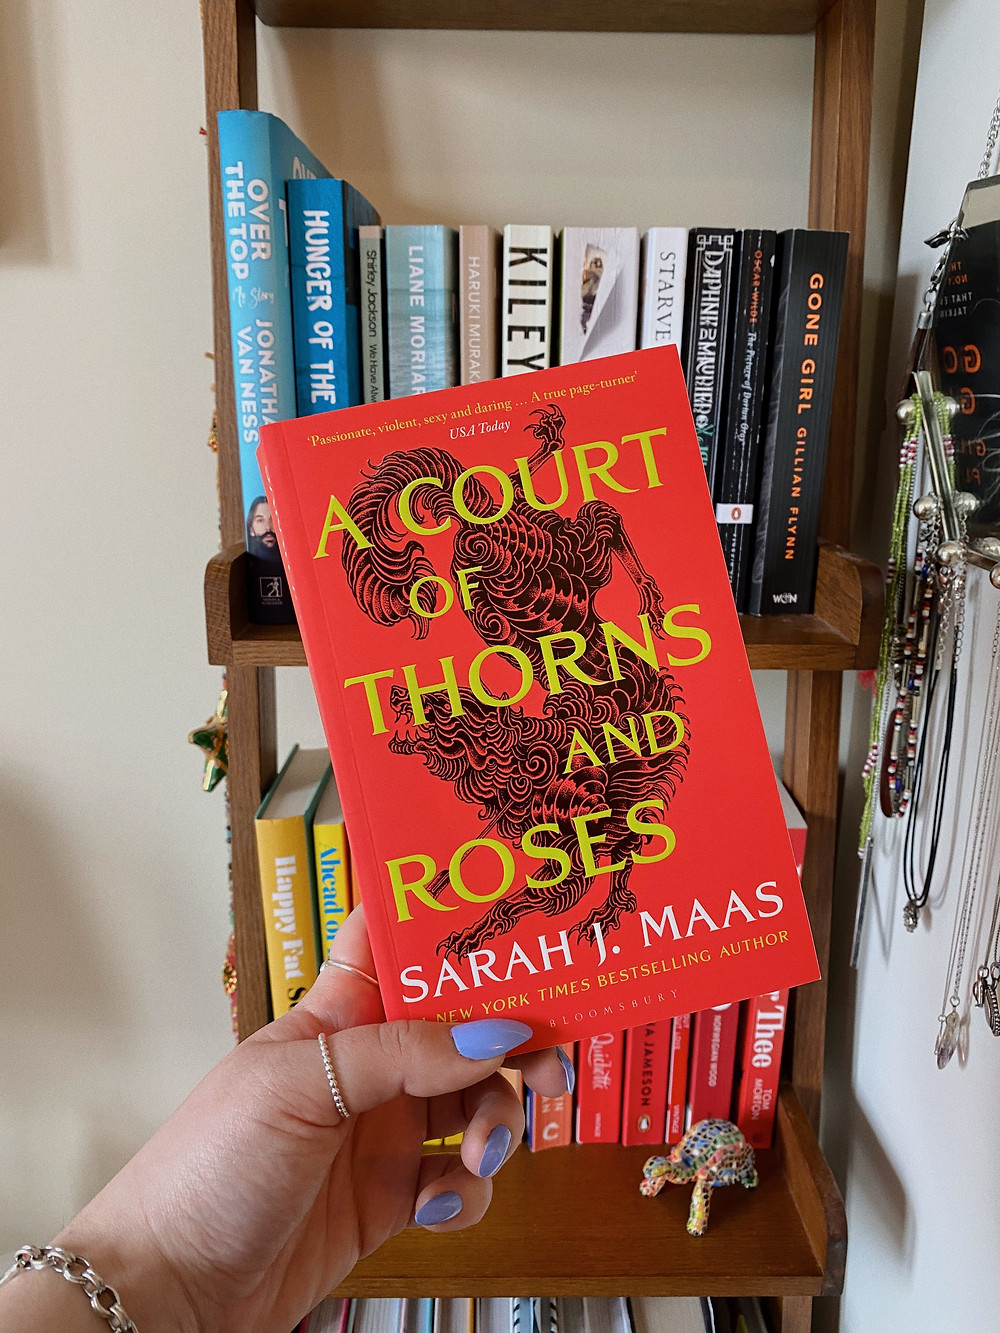 'A Court of Thorns and Roses' by Sarah J. Maas